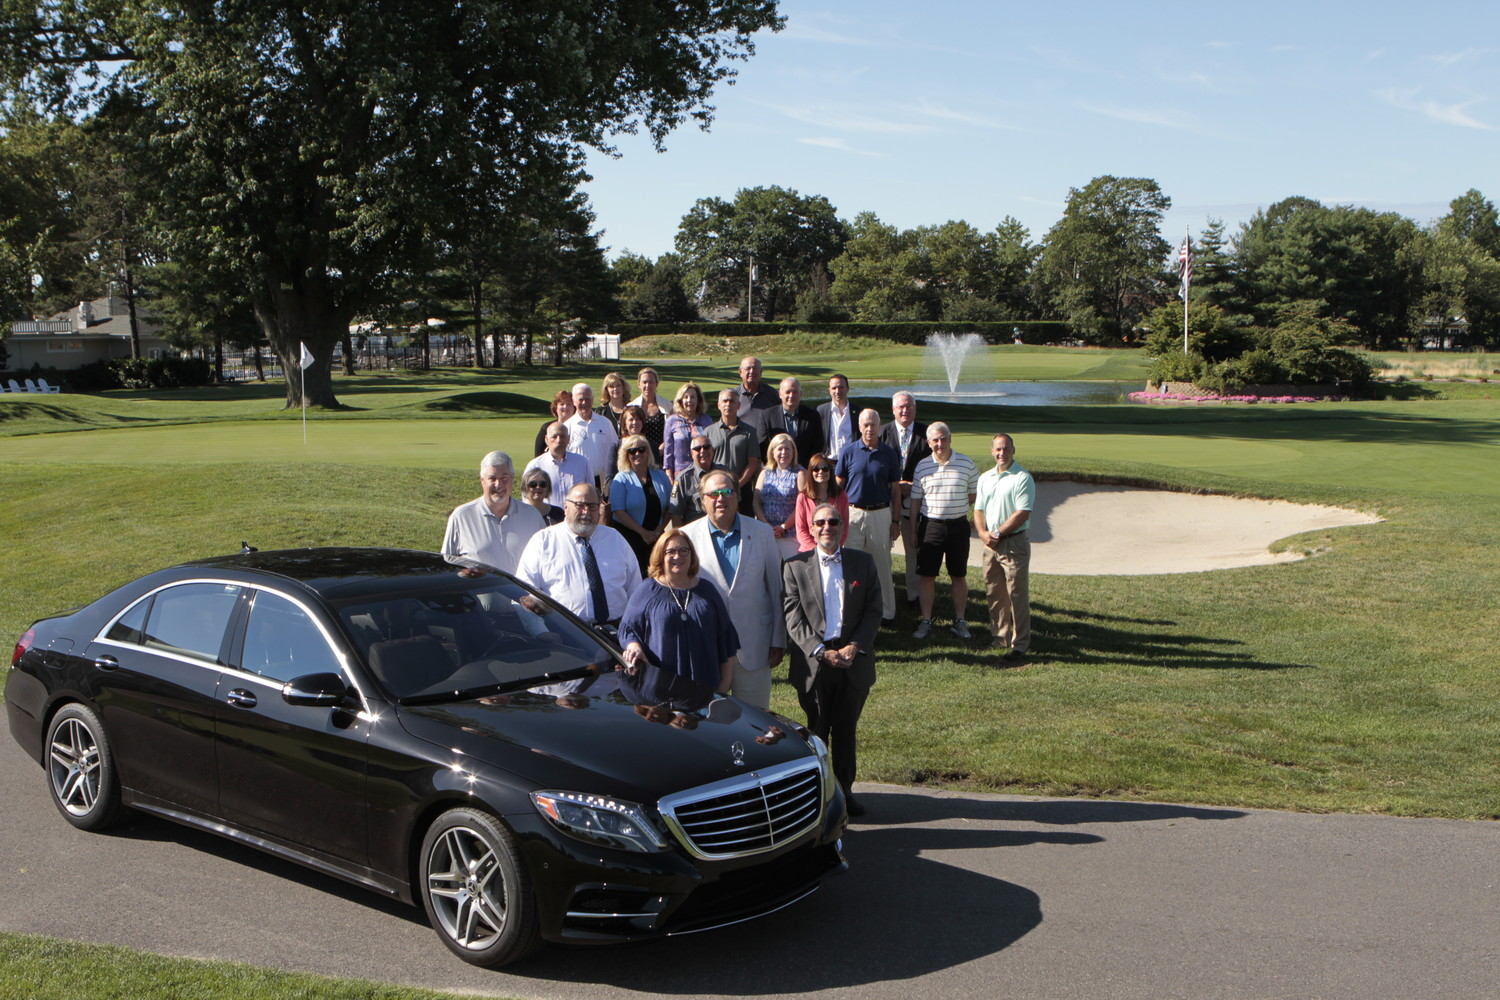 Former Rockville Centre Deputy Mayor Nancy Howard, front, alongside other village officials and community members, will be honored at the 30th Annual Mayor's Golf Classic on Sept. 25.